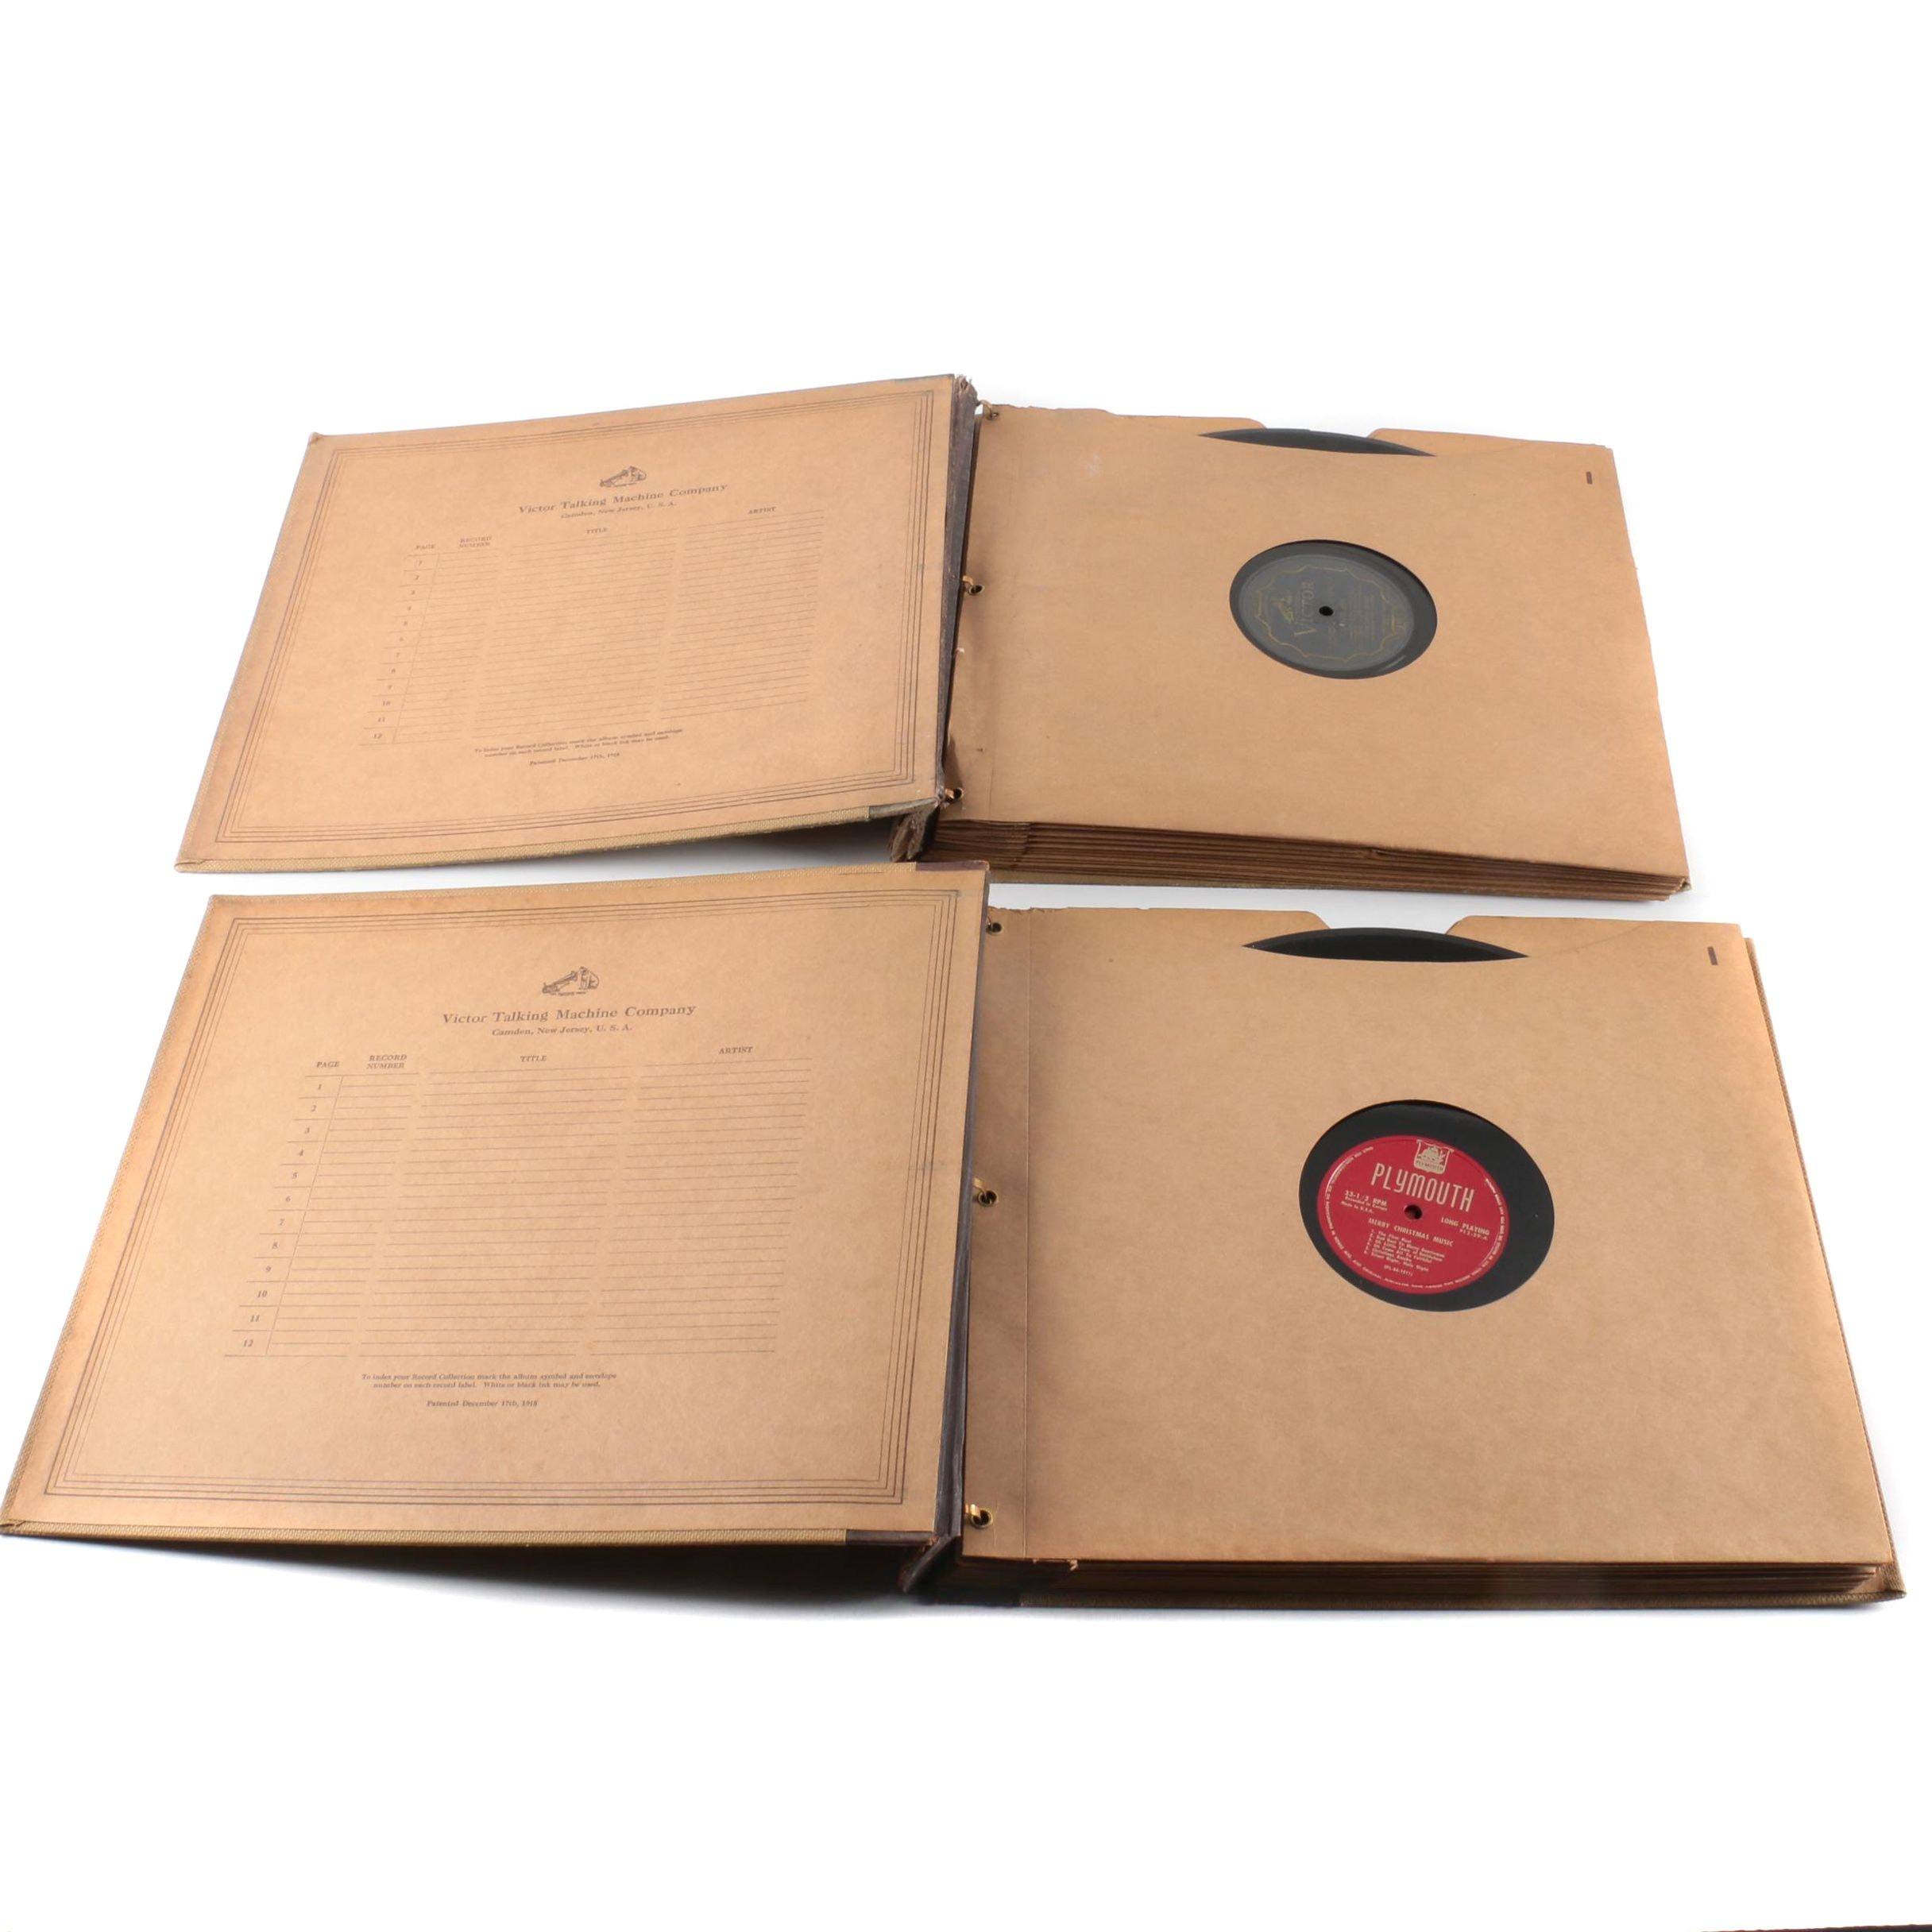 Vintage Record Books Featuring Sarah Vaughan and Dizzy Gillespie